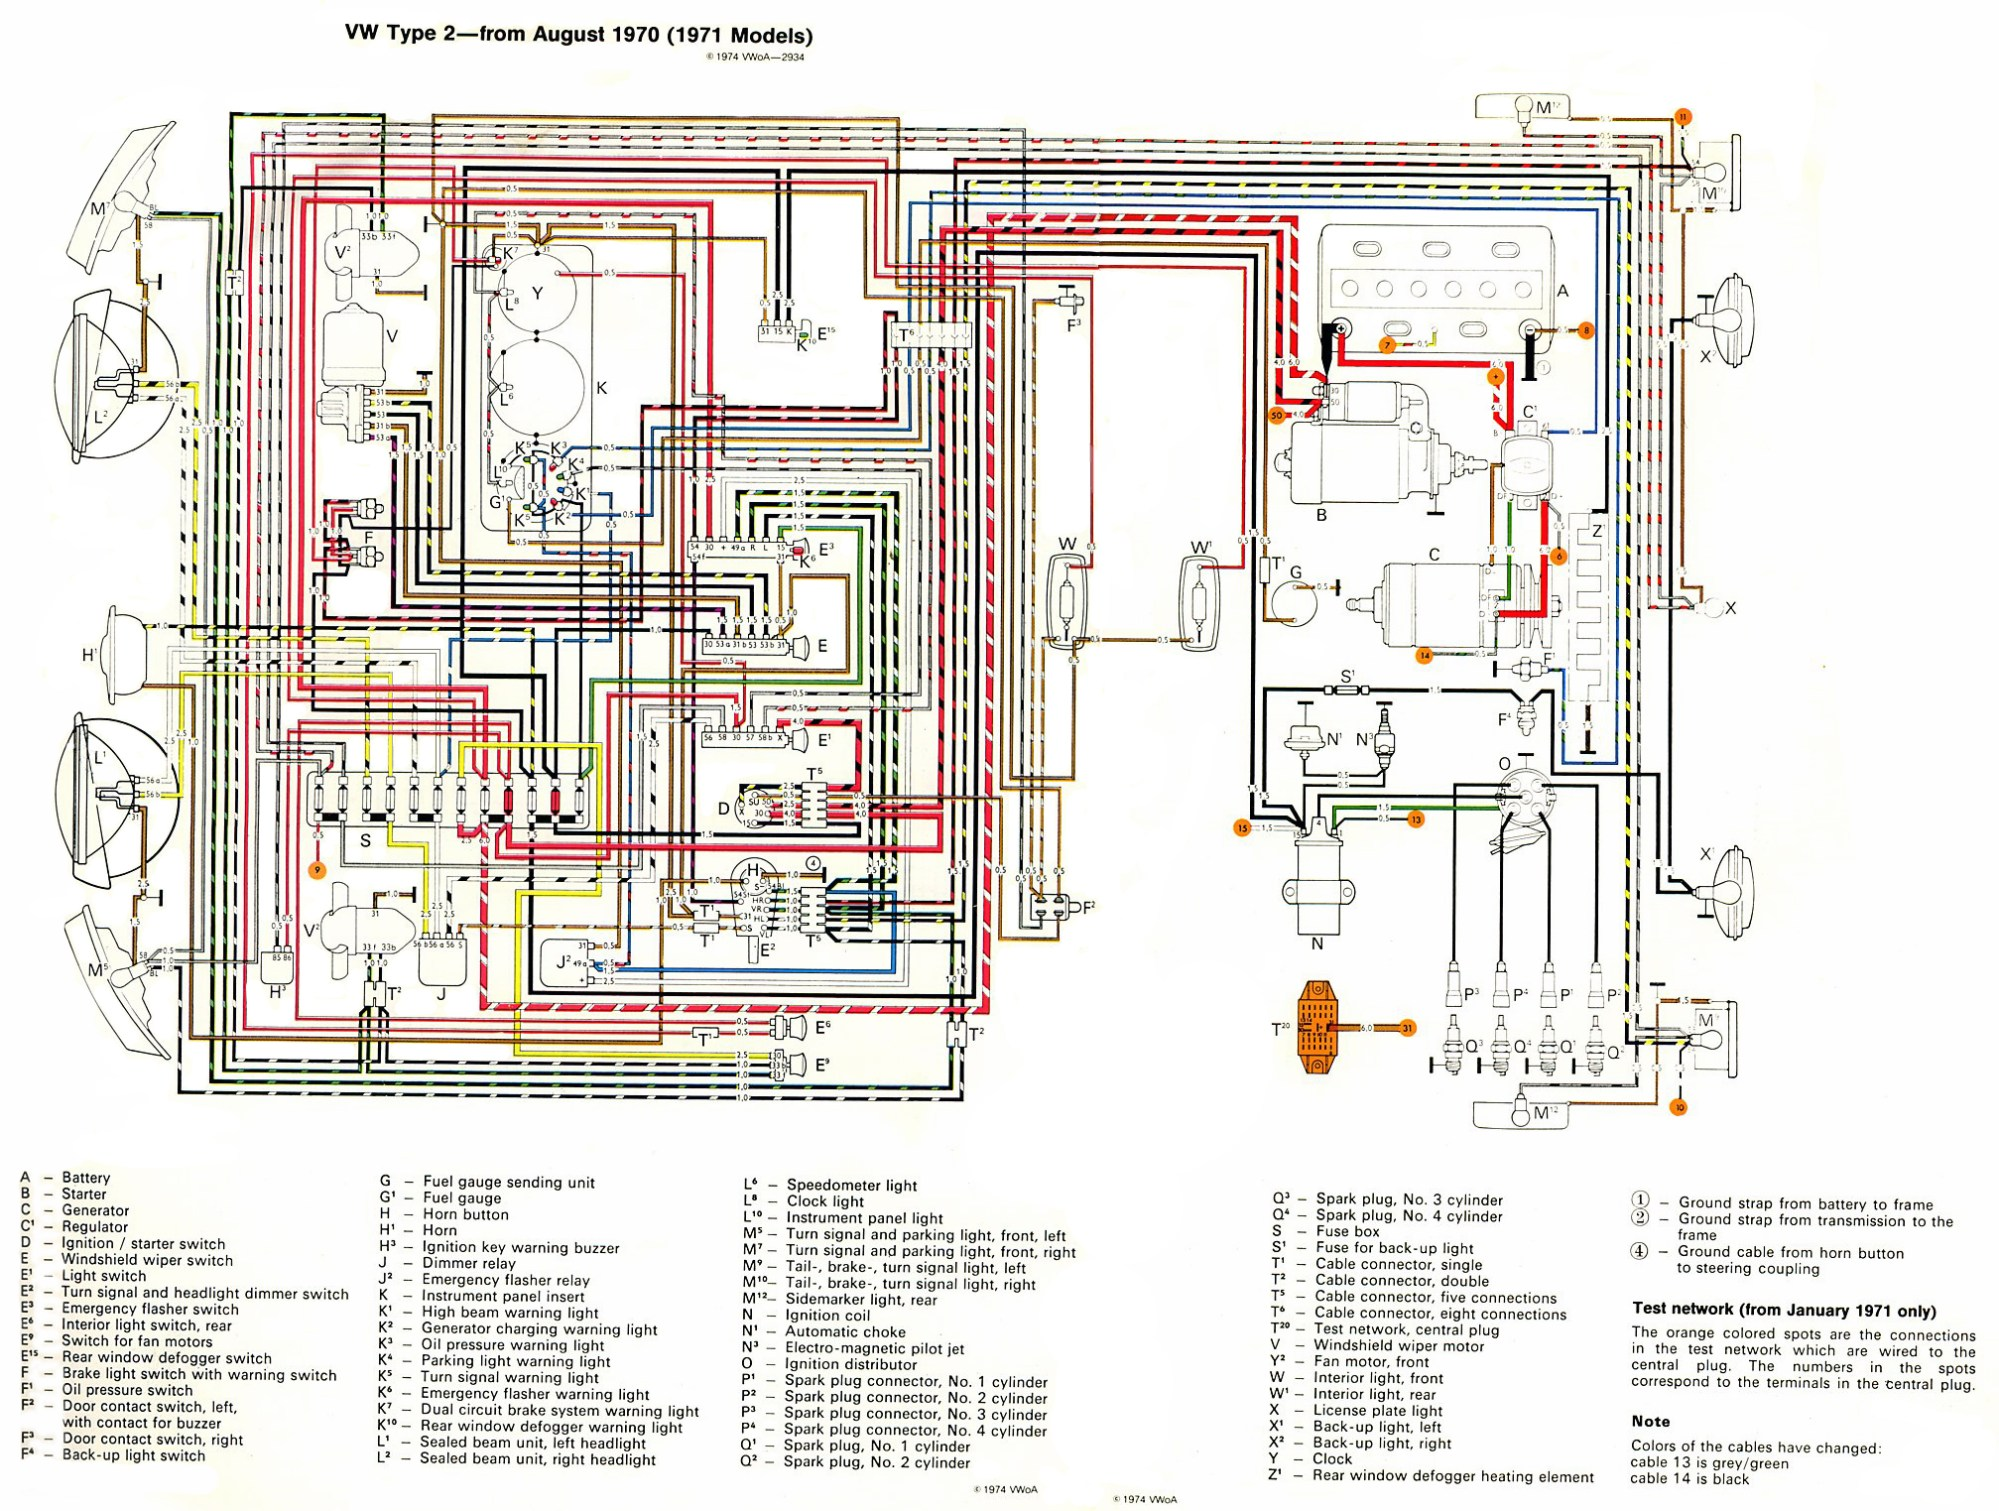 hight resolution of bad boy buggy wiring schematic wiring diagrams scematic bad boy buggy wiring diagram for 4 wheel drive bad boy buggy controller wiring diagram